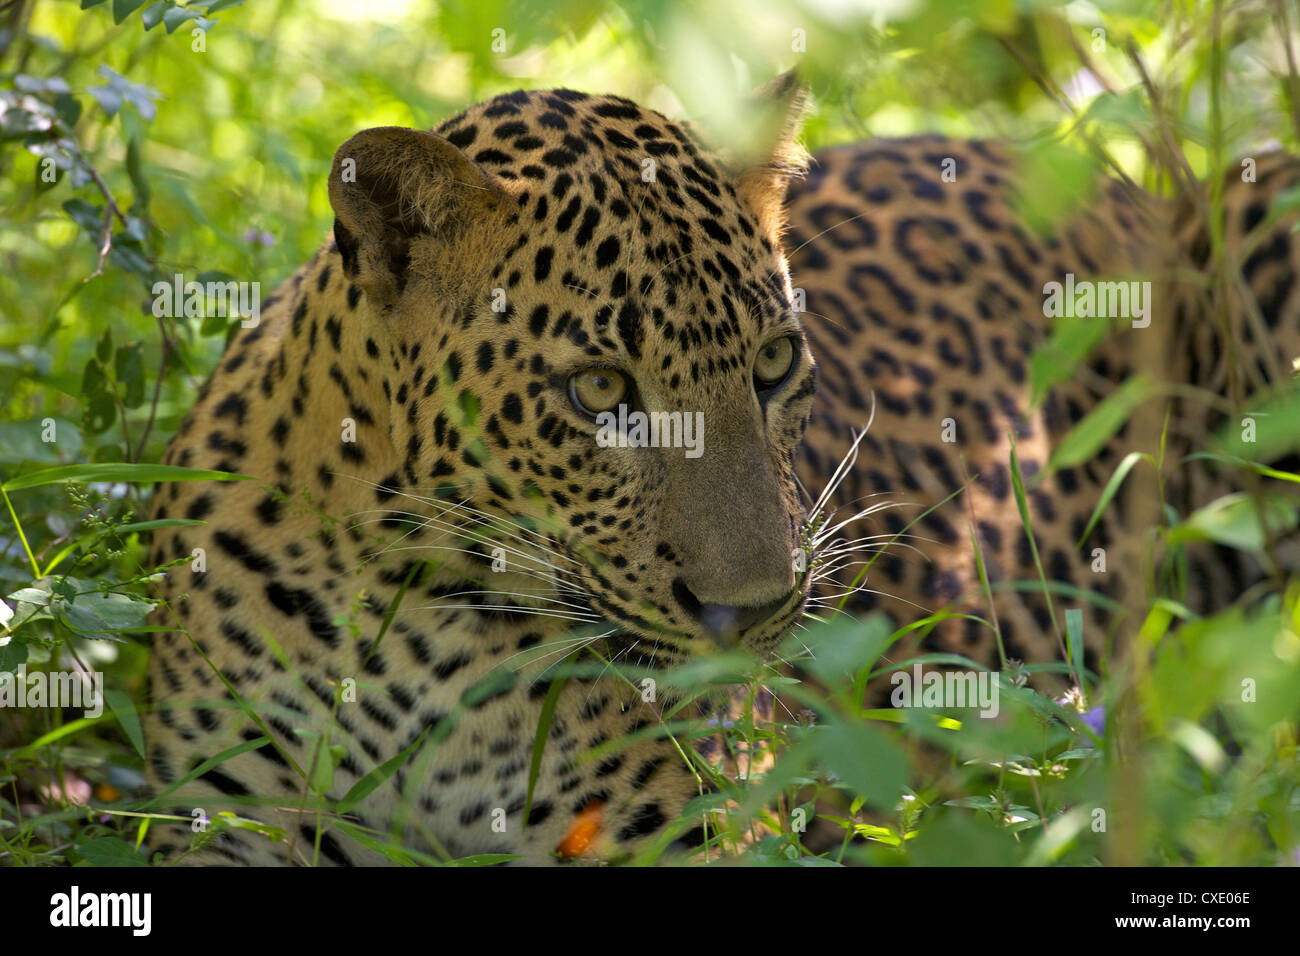 Leopard (panthera pardus) resting in thick undergrowth, Yala National Park, Sri Lanka, Asia Stock Photo